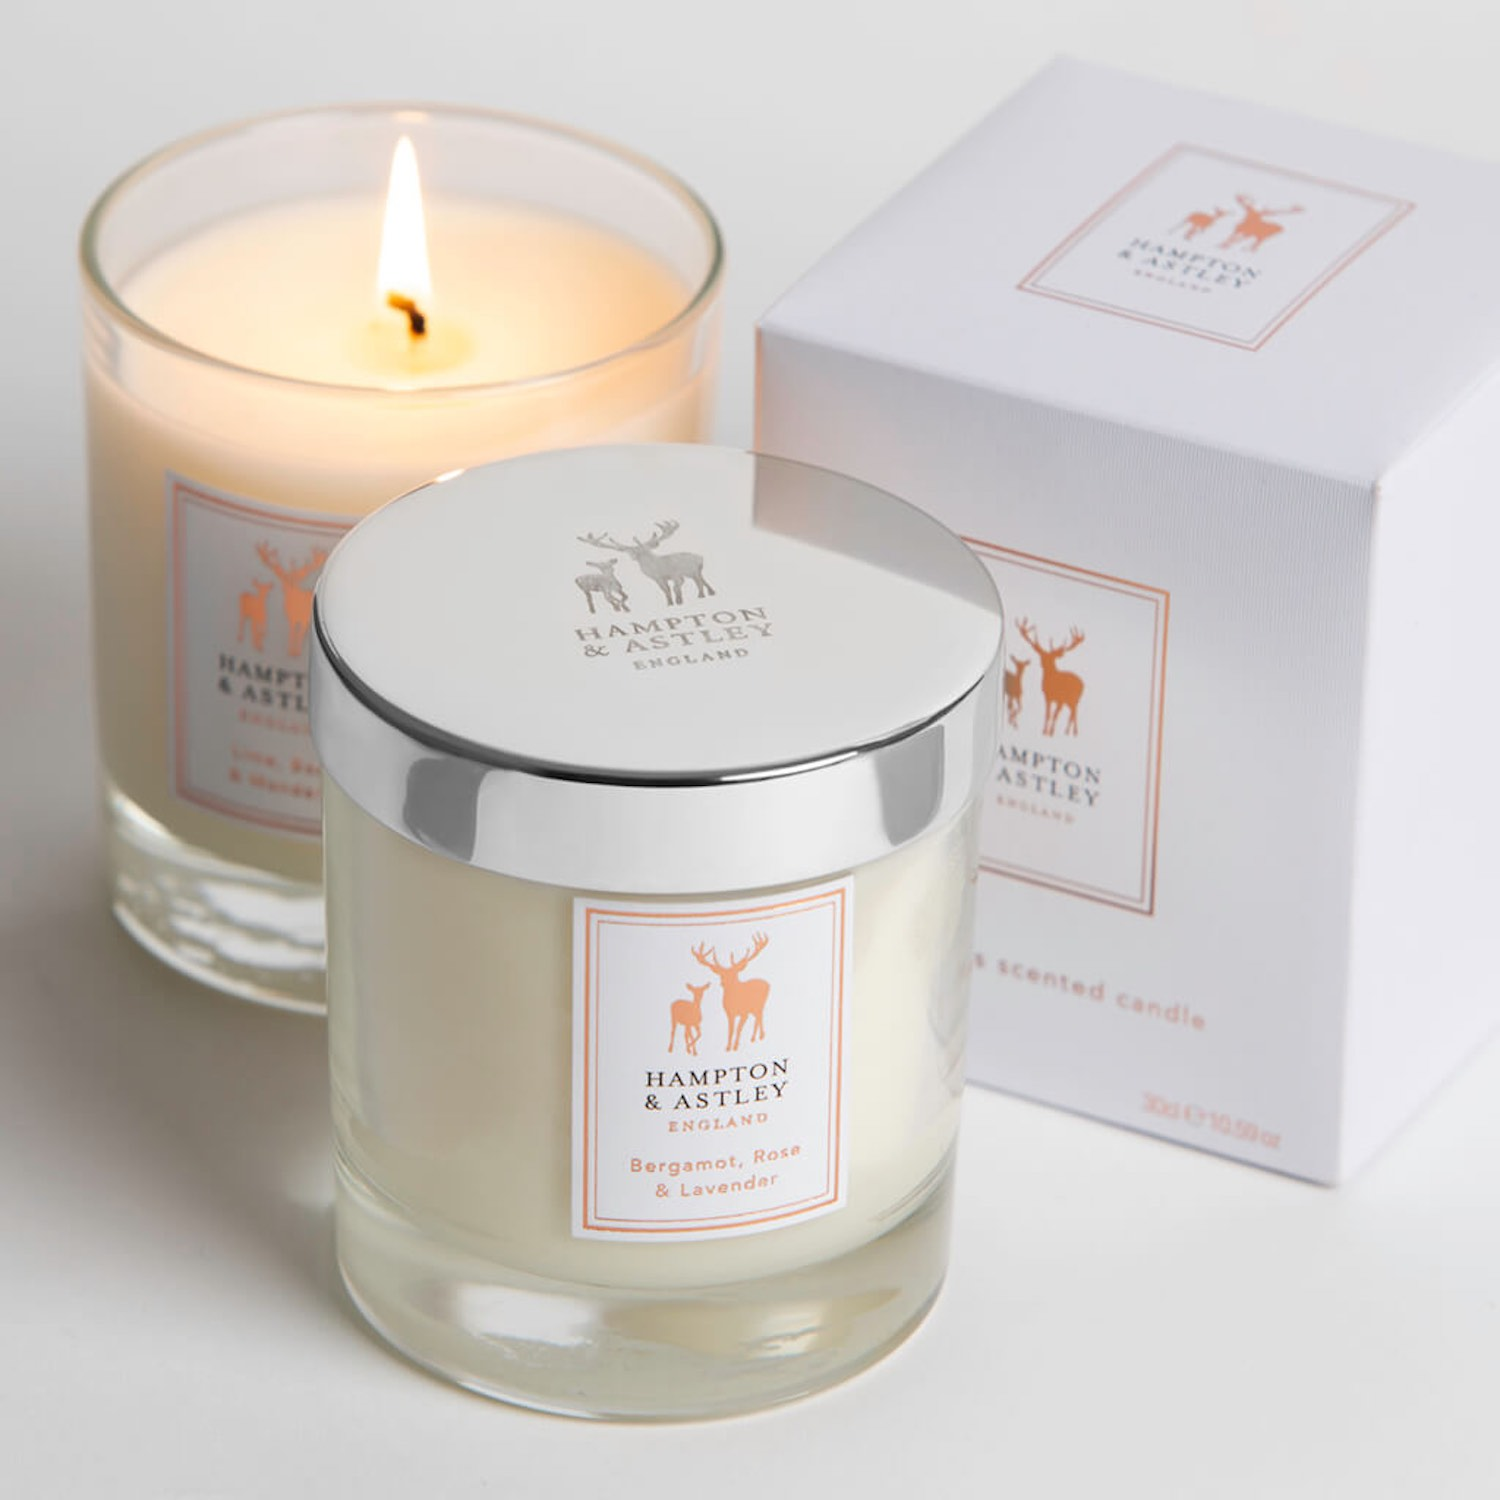 A special treat for Mum with the 3 of award-winning luxury candles, now available for £49.99 from Hampton and Astley